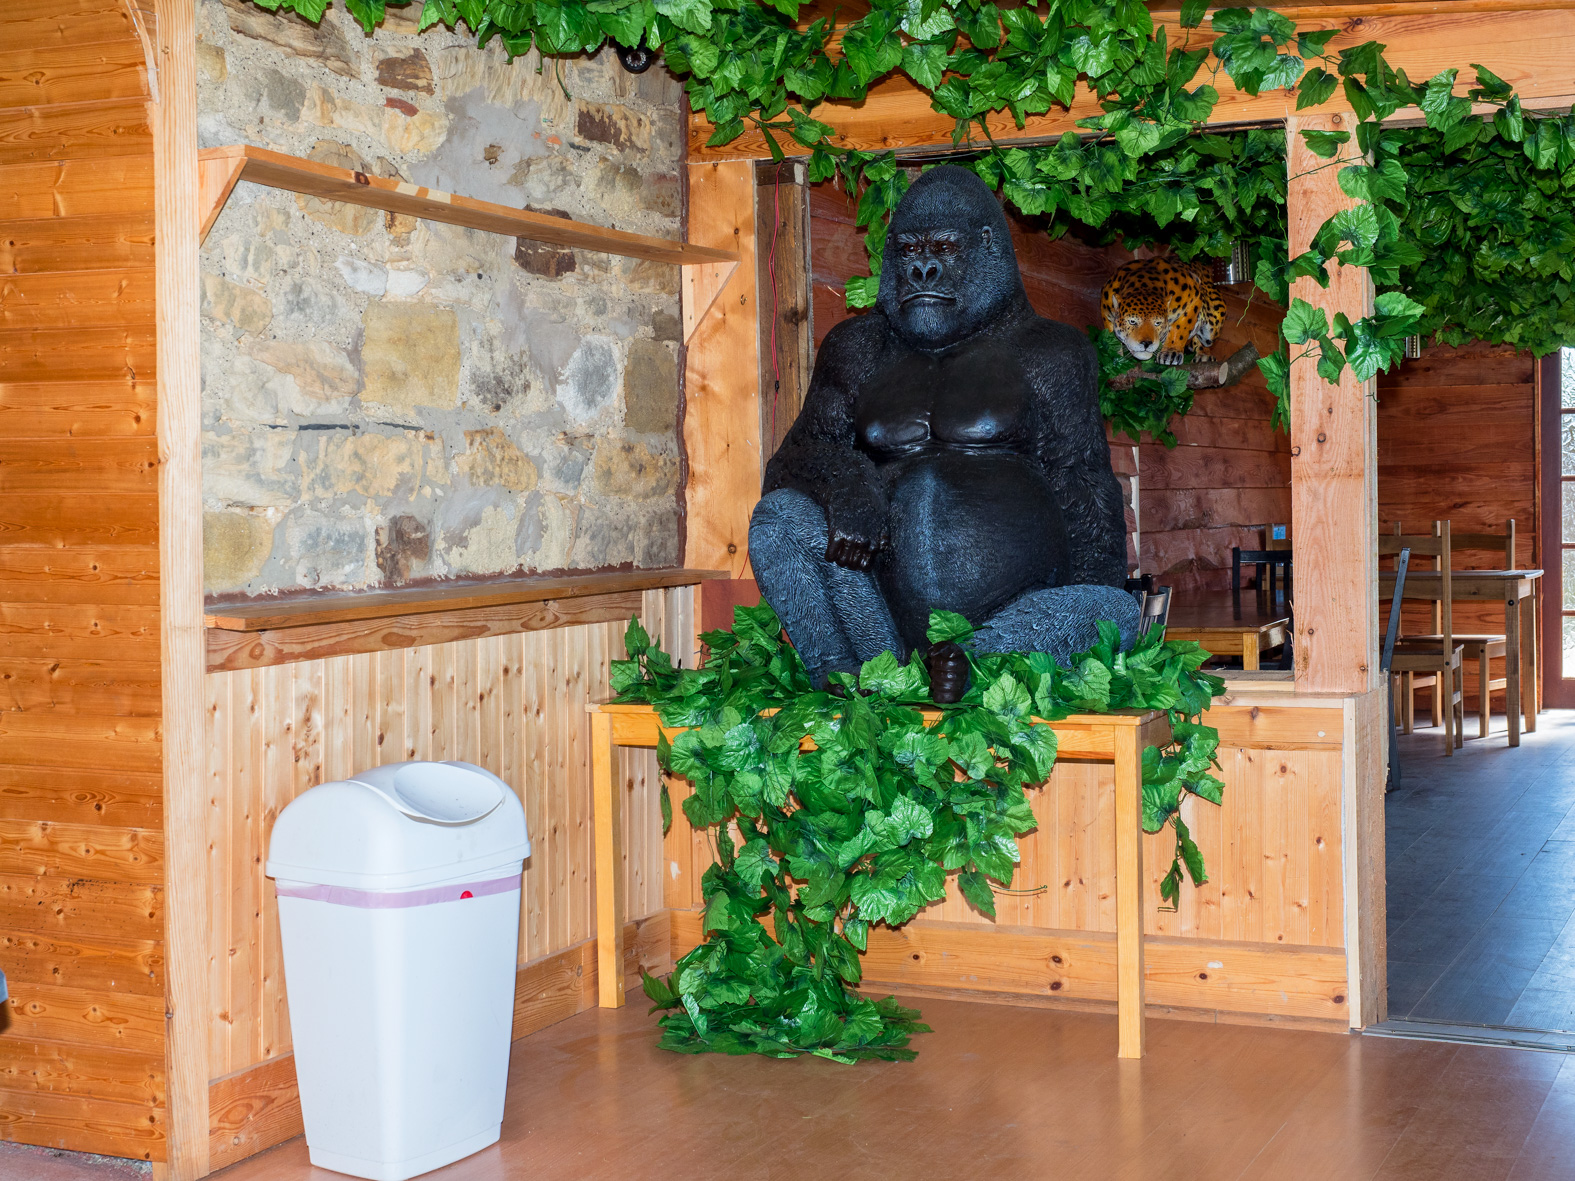 A plastic gorilla sits in the tea room at Esshottheugh Animal Park. Morpeth, Northumberland.